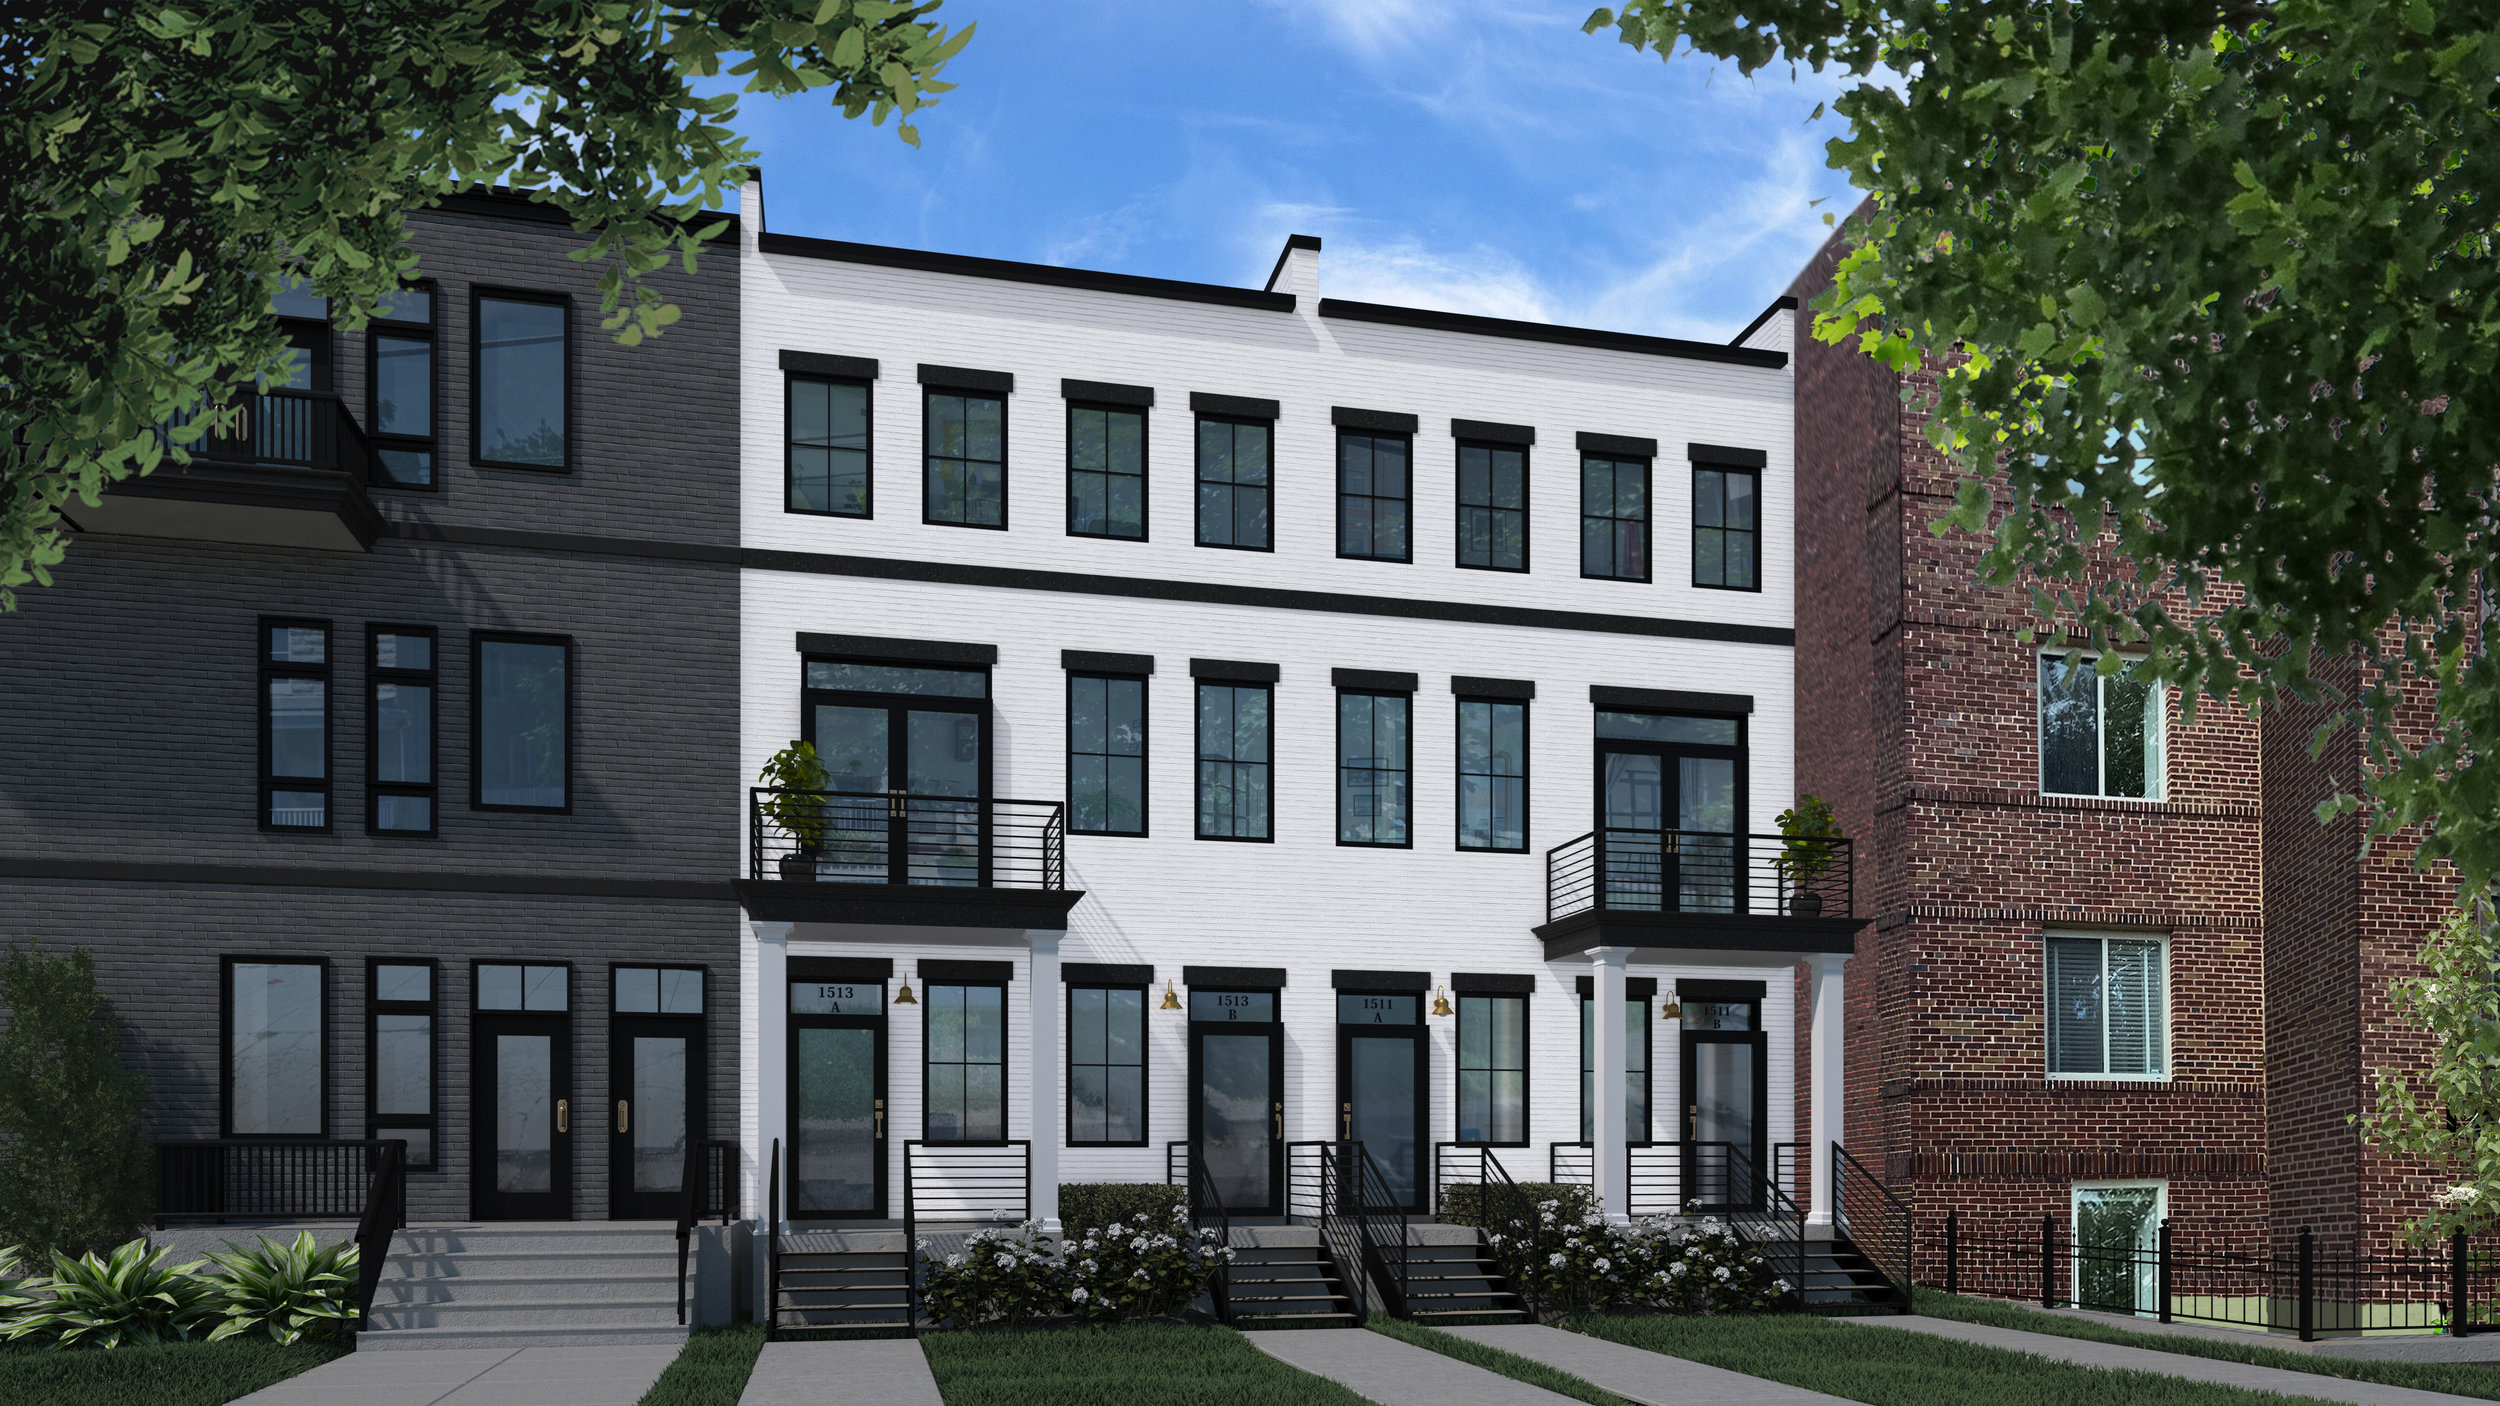 The Stevens - 5411 & 5413 9th St. NW | Brightwood ParkBreaking Ground Late 2019 | Four-unit new condominium construction